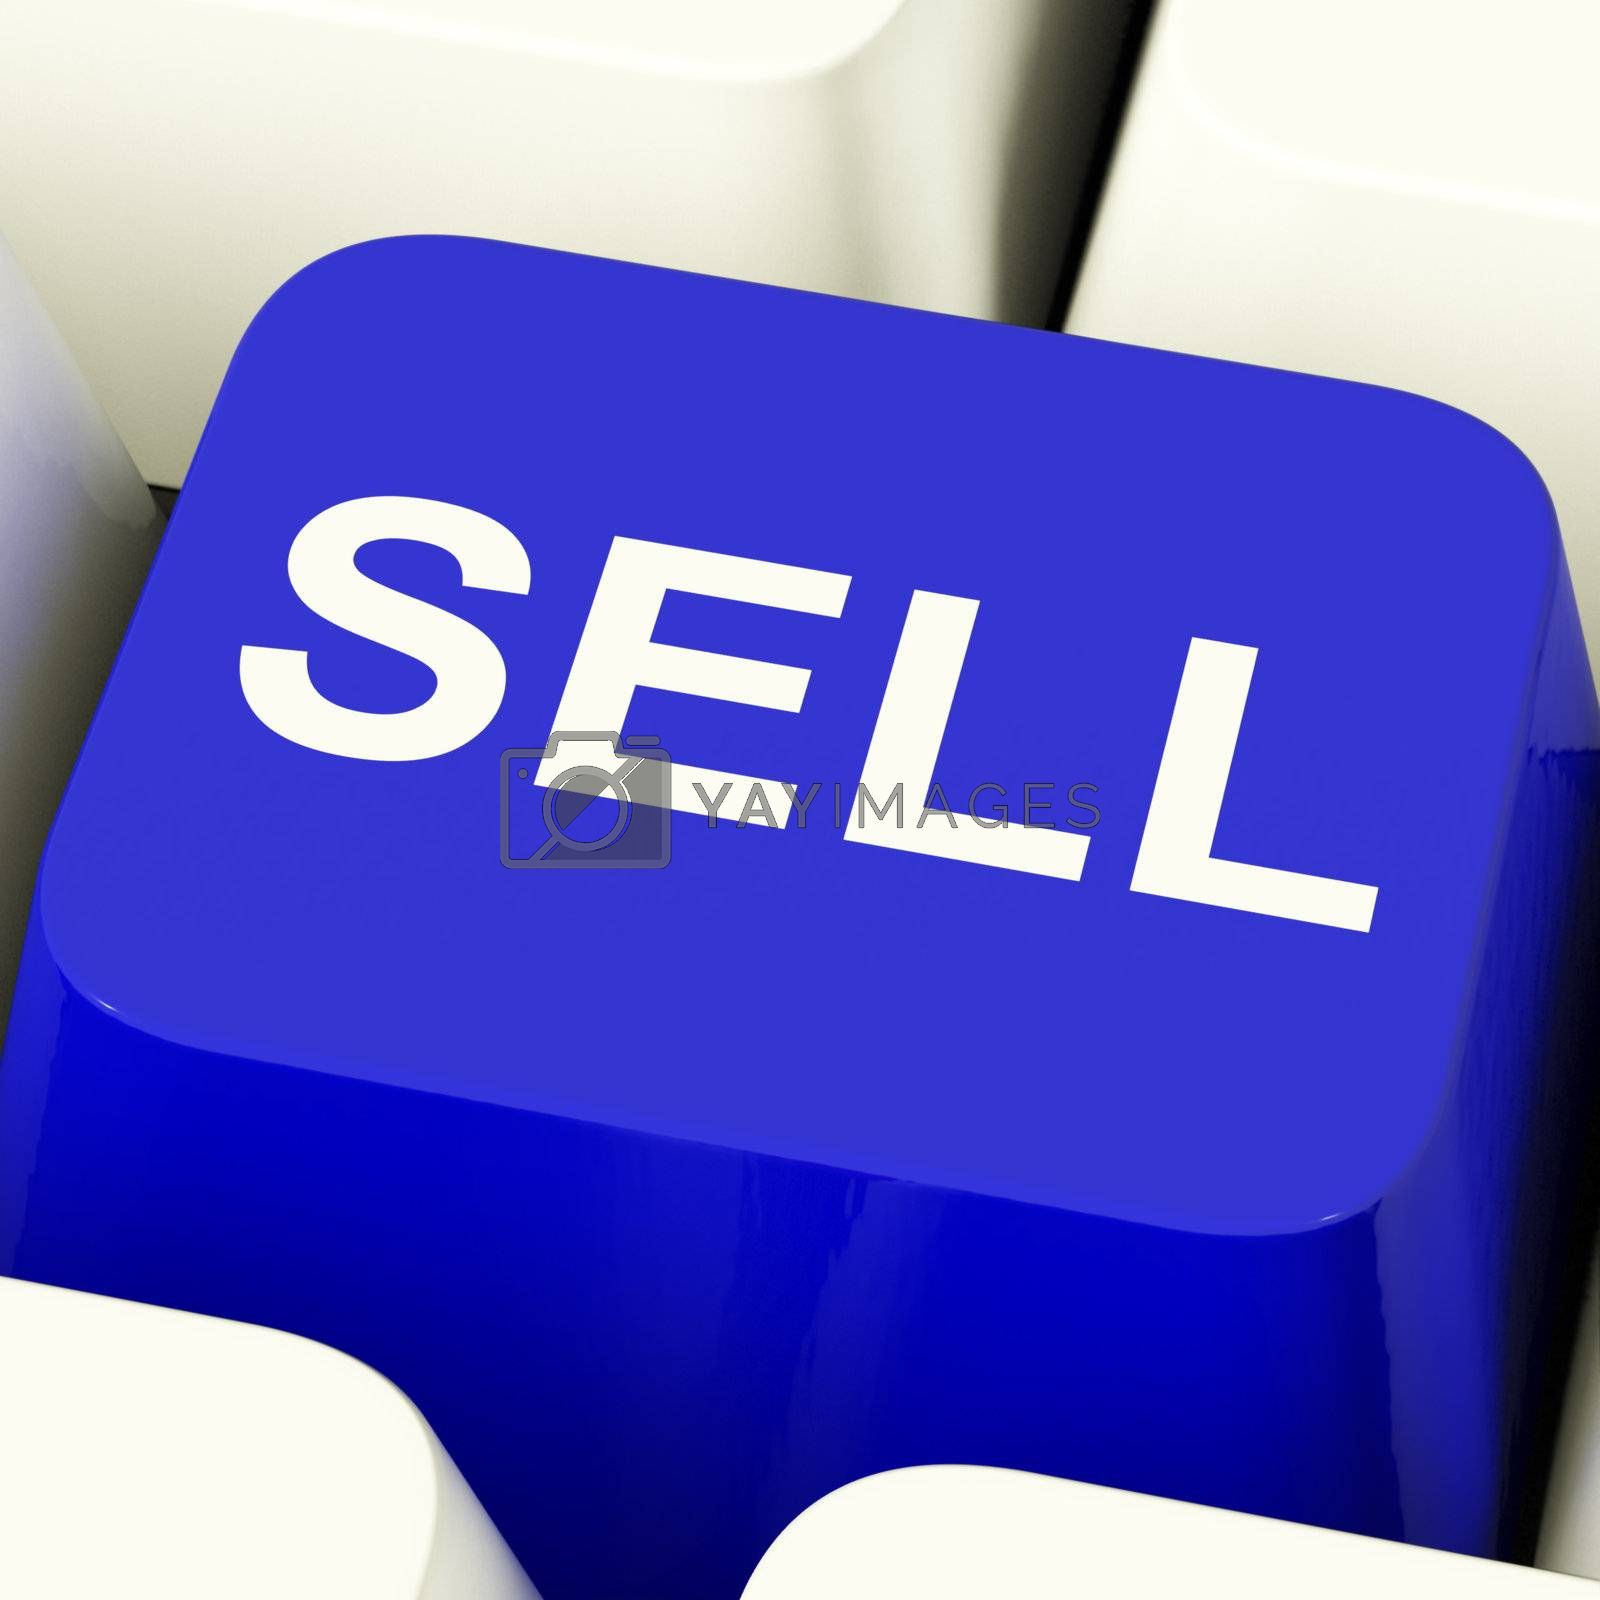 Sell Computer Key In Blue Showing Sales And Business Opportunities